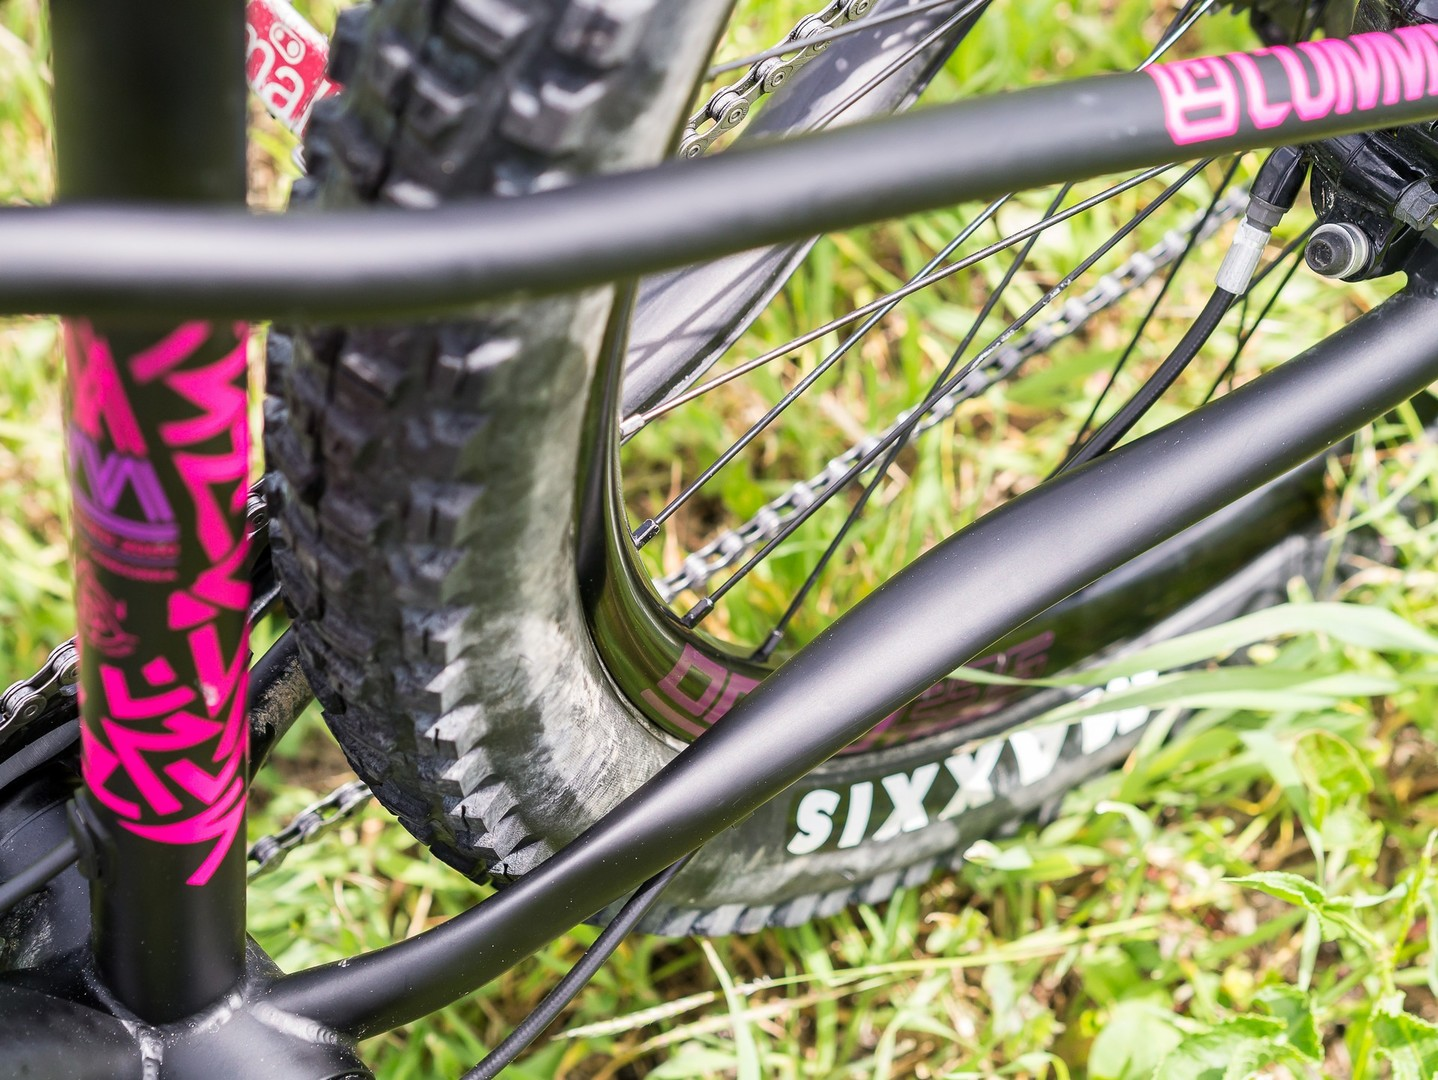 Commencal Meta HT AM CrMo 650B Purple - foderi bassi